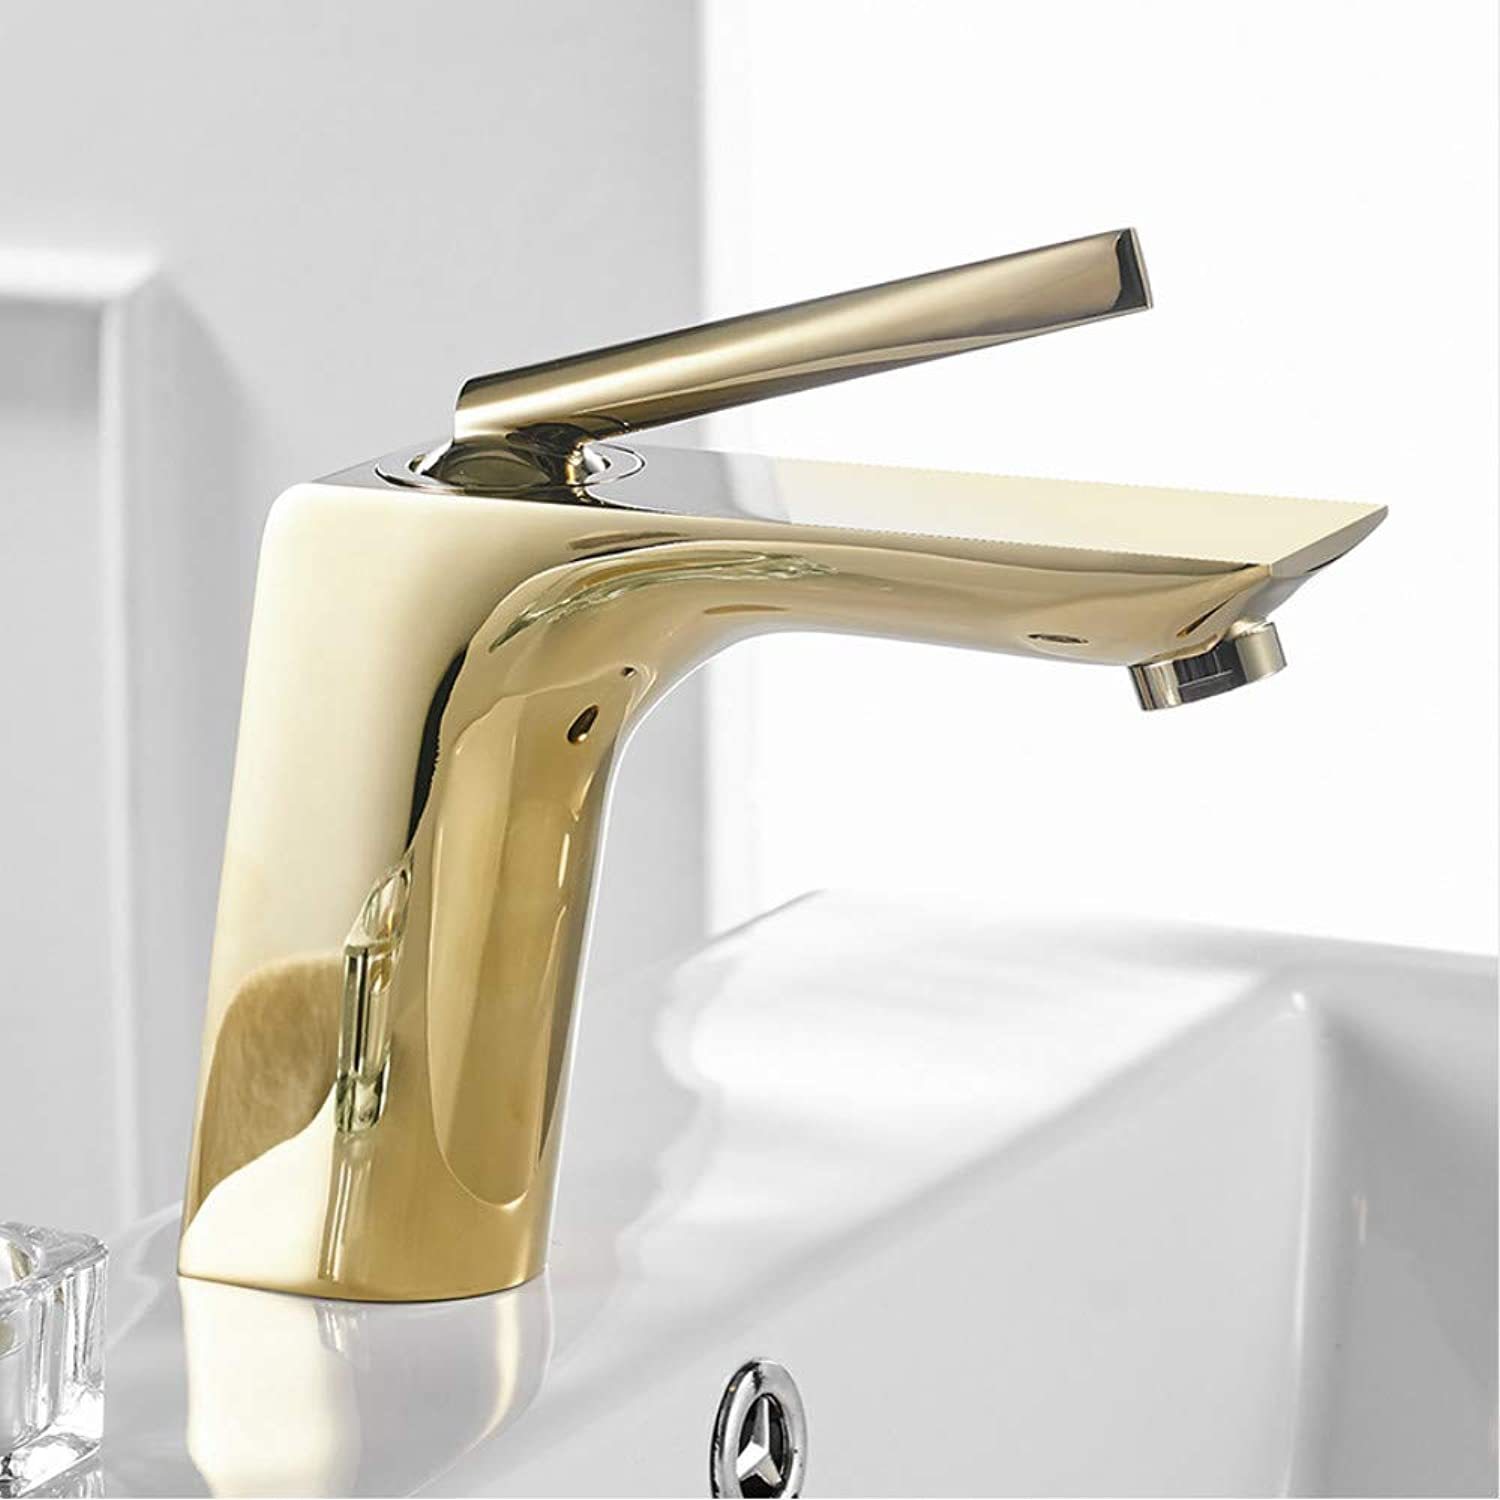 LLLYZZ Basin Faucets Modern White Chrome Brass Bathroom Sink Faucet Single Handle Hole Toilet Bath Mixer Water Tap Crane